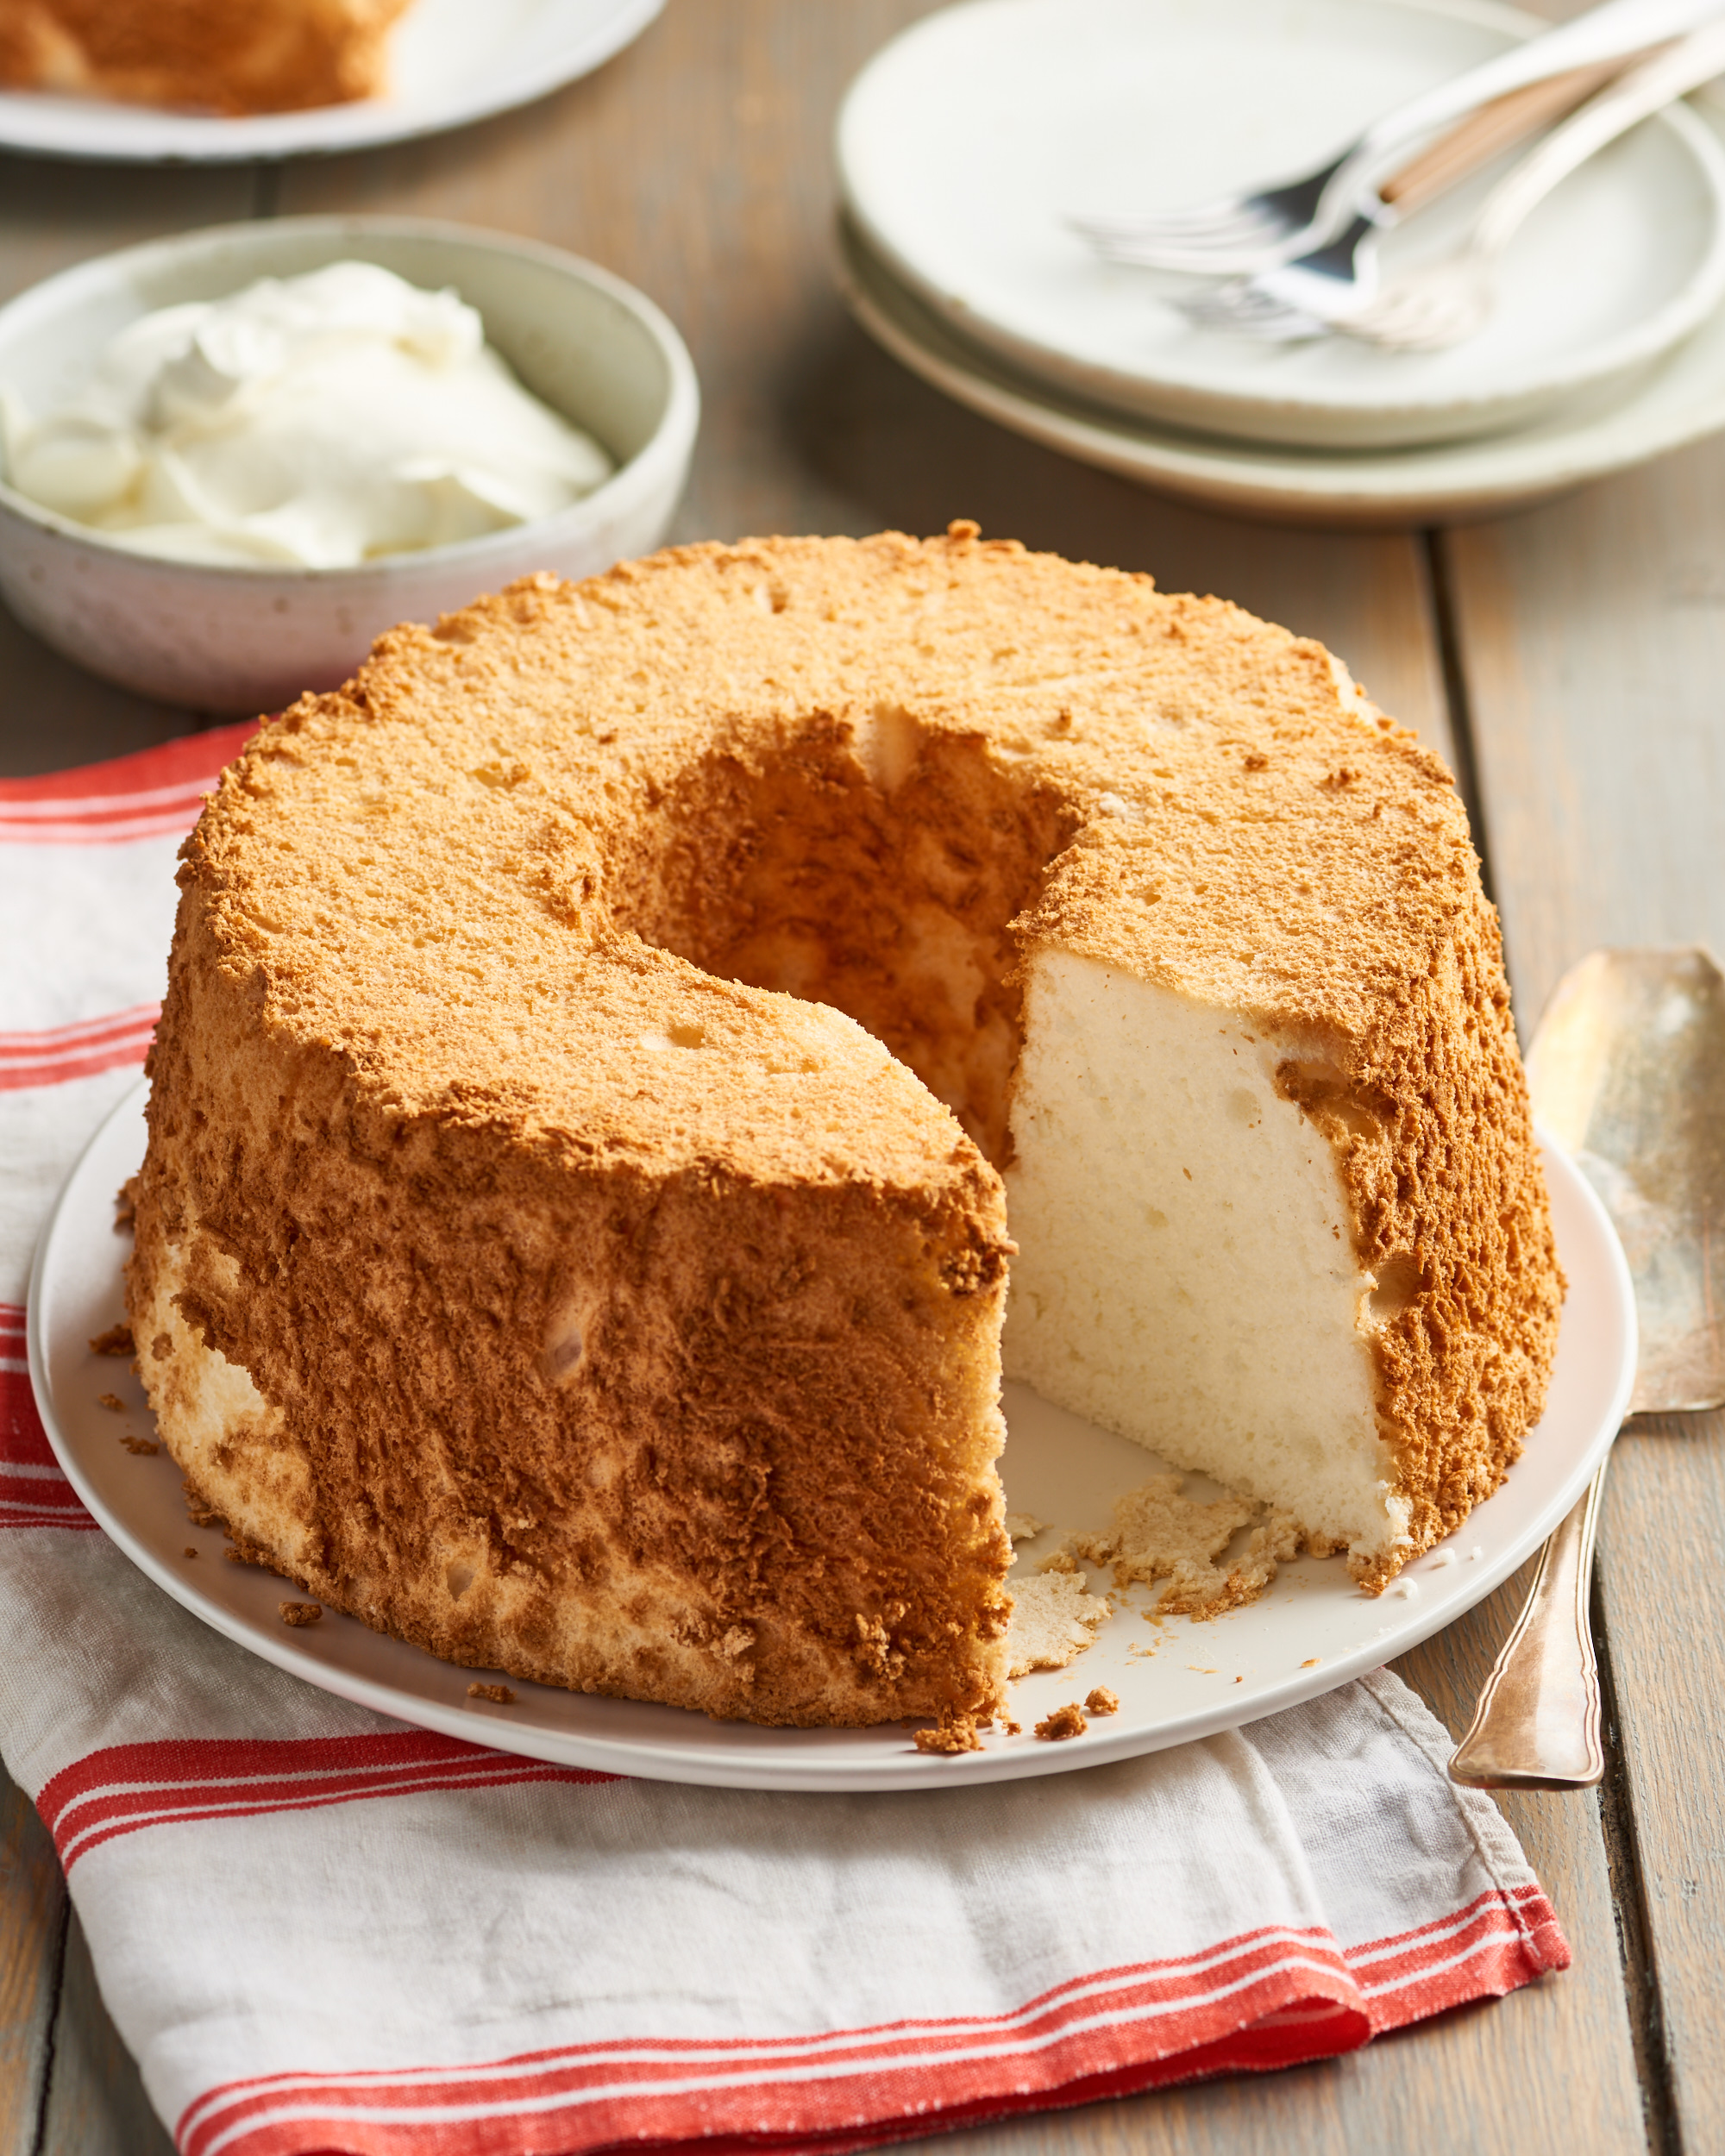 How To Make a Classic Angel Food Cake That Comes Out Perfectly Every Time